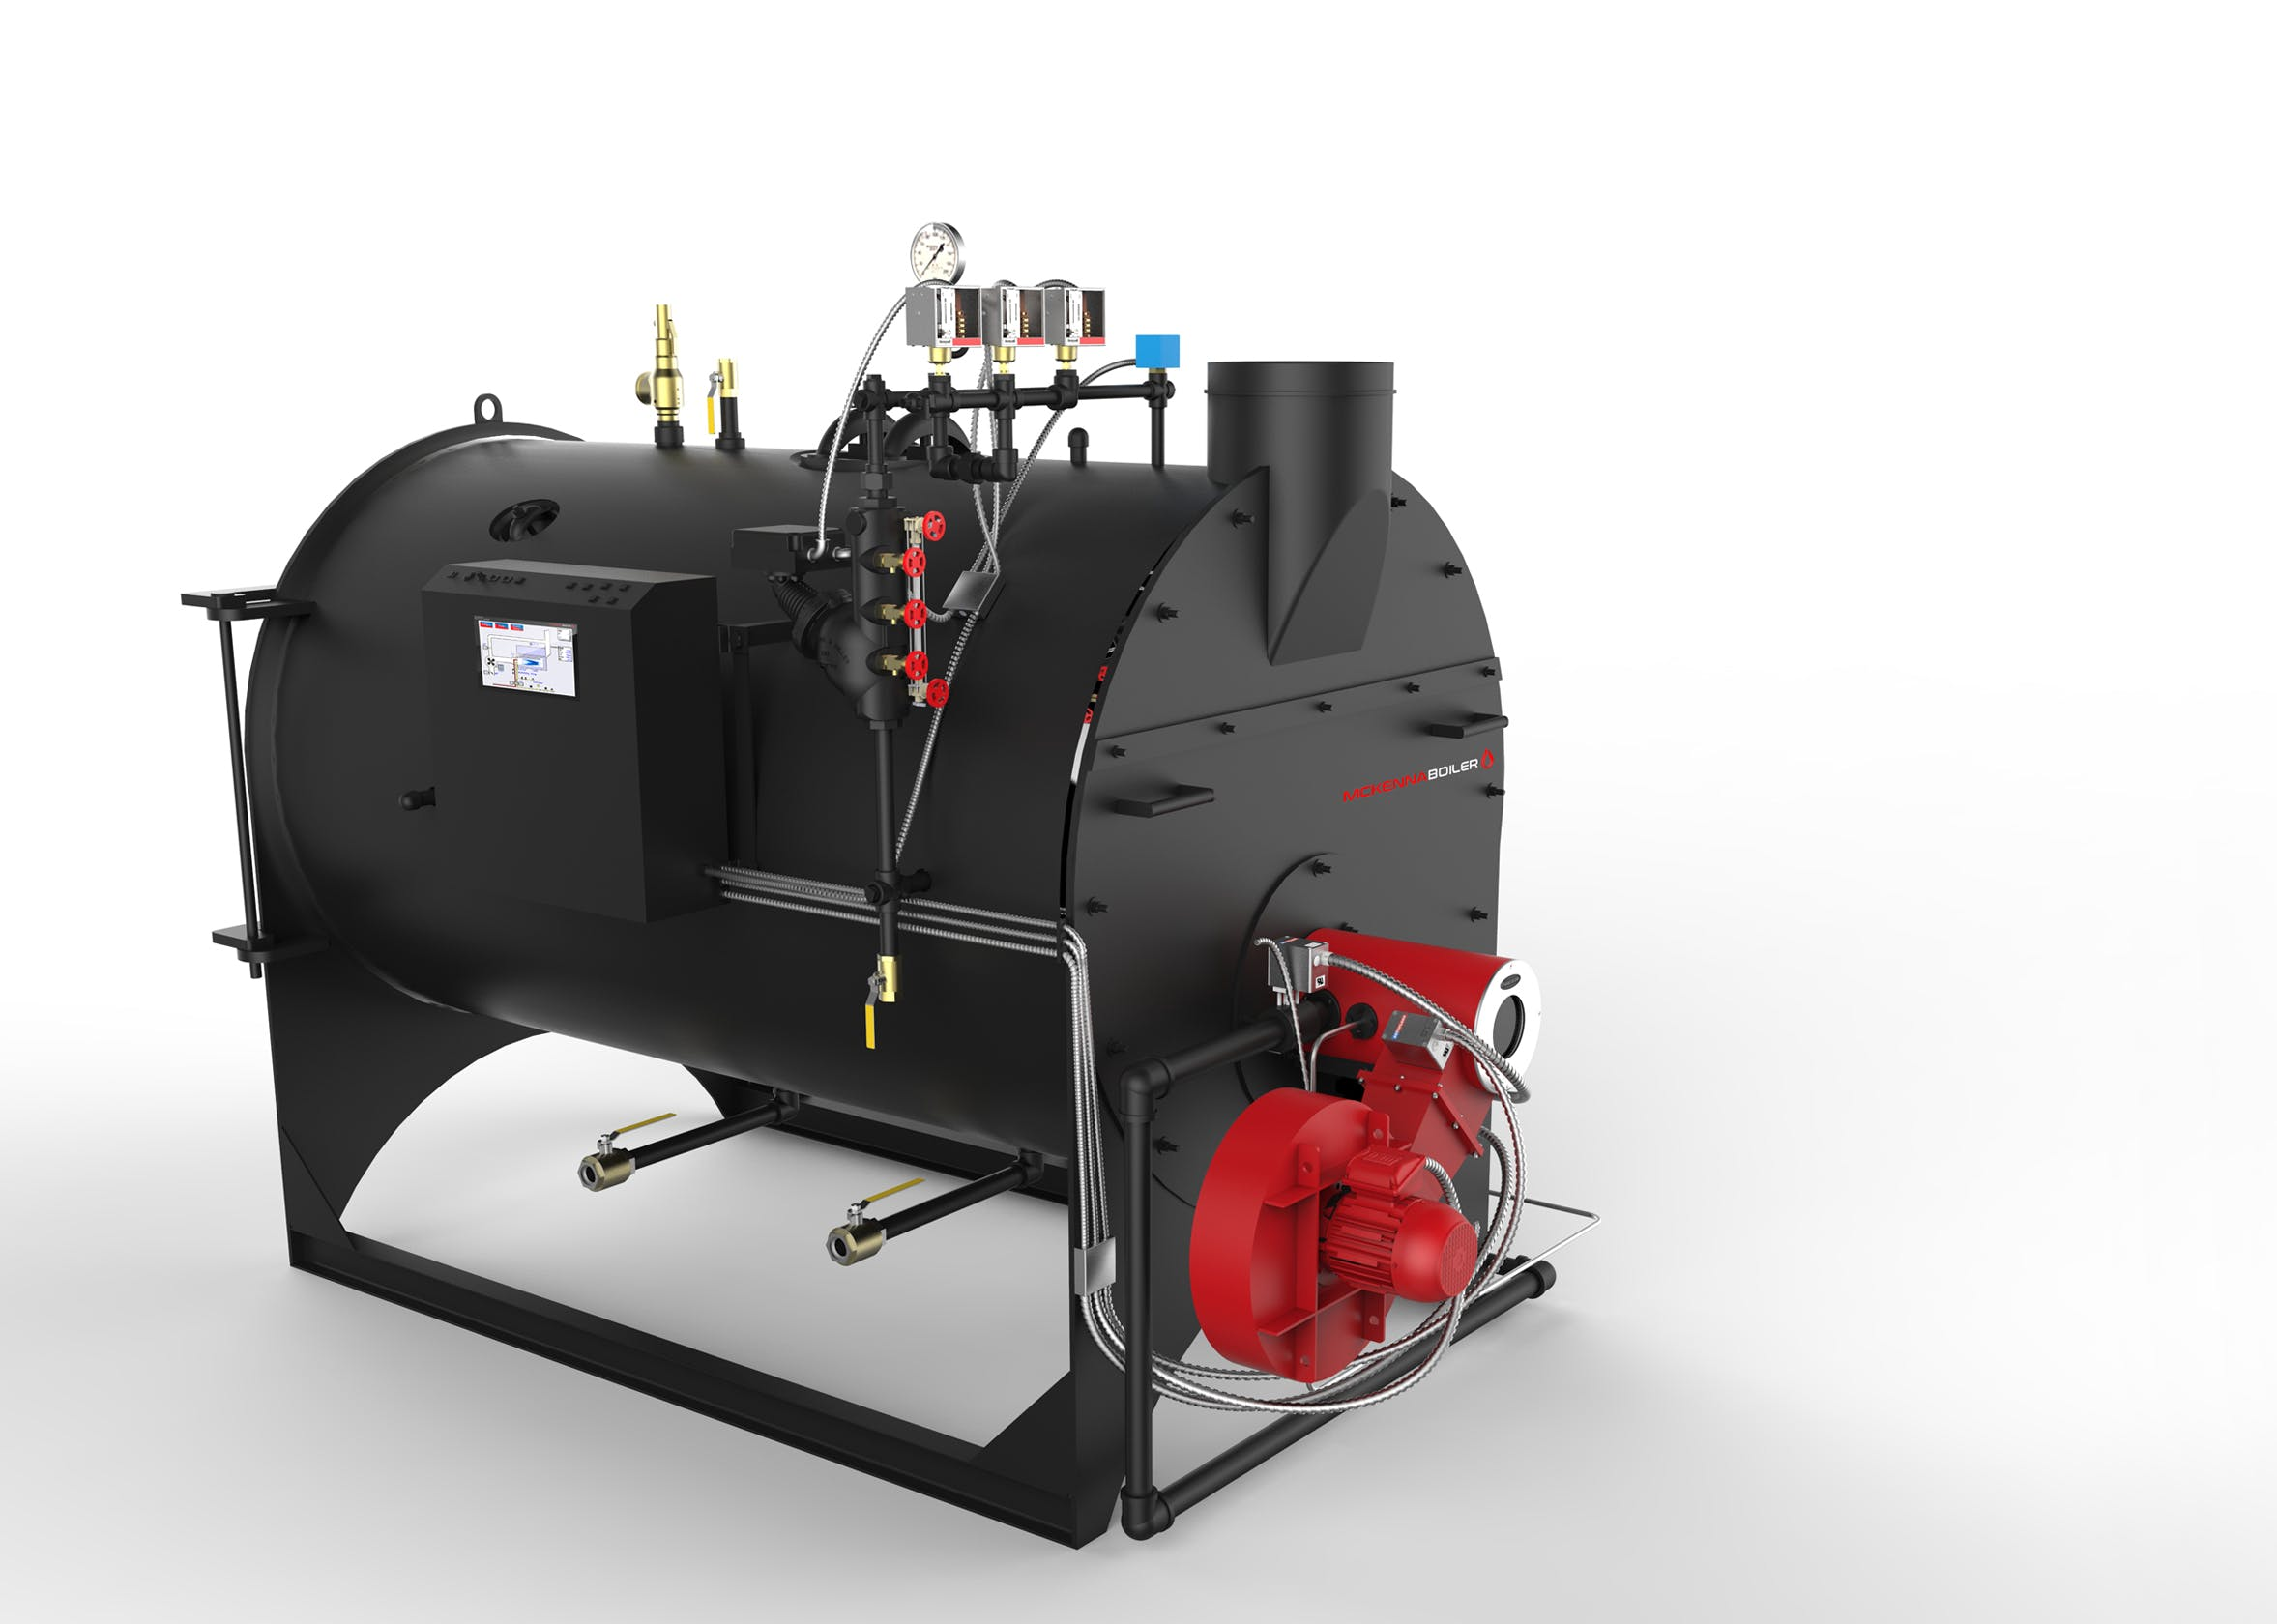 McKenna JFS Series Boiler Steam boiler sold by McKenna Boiler Works, Inc